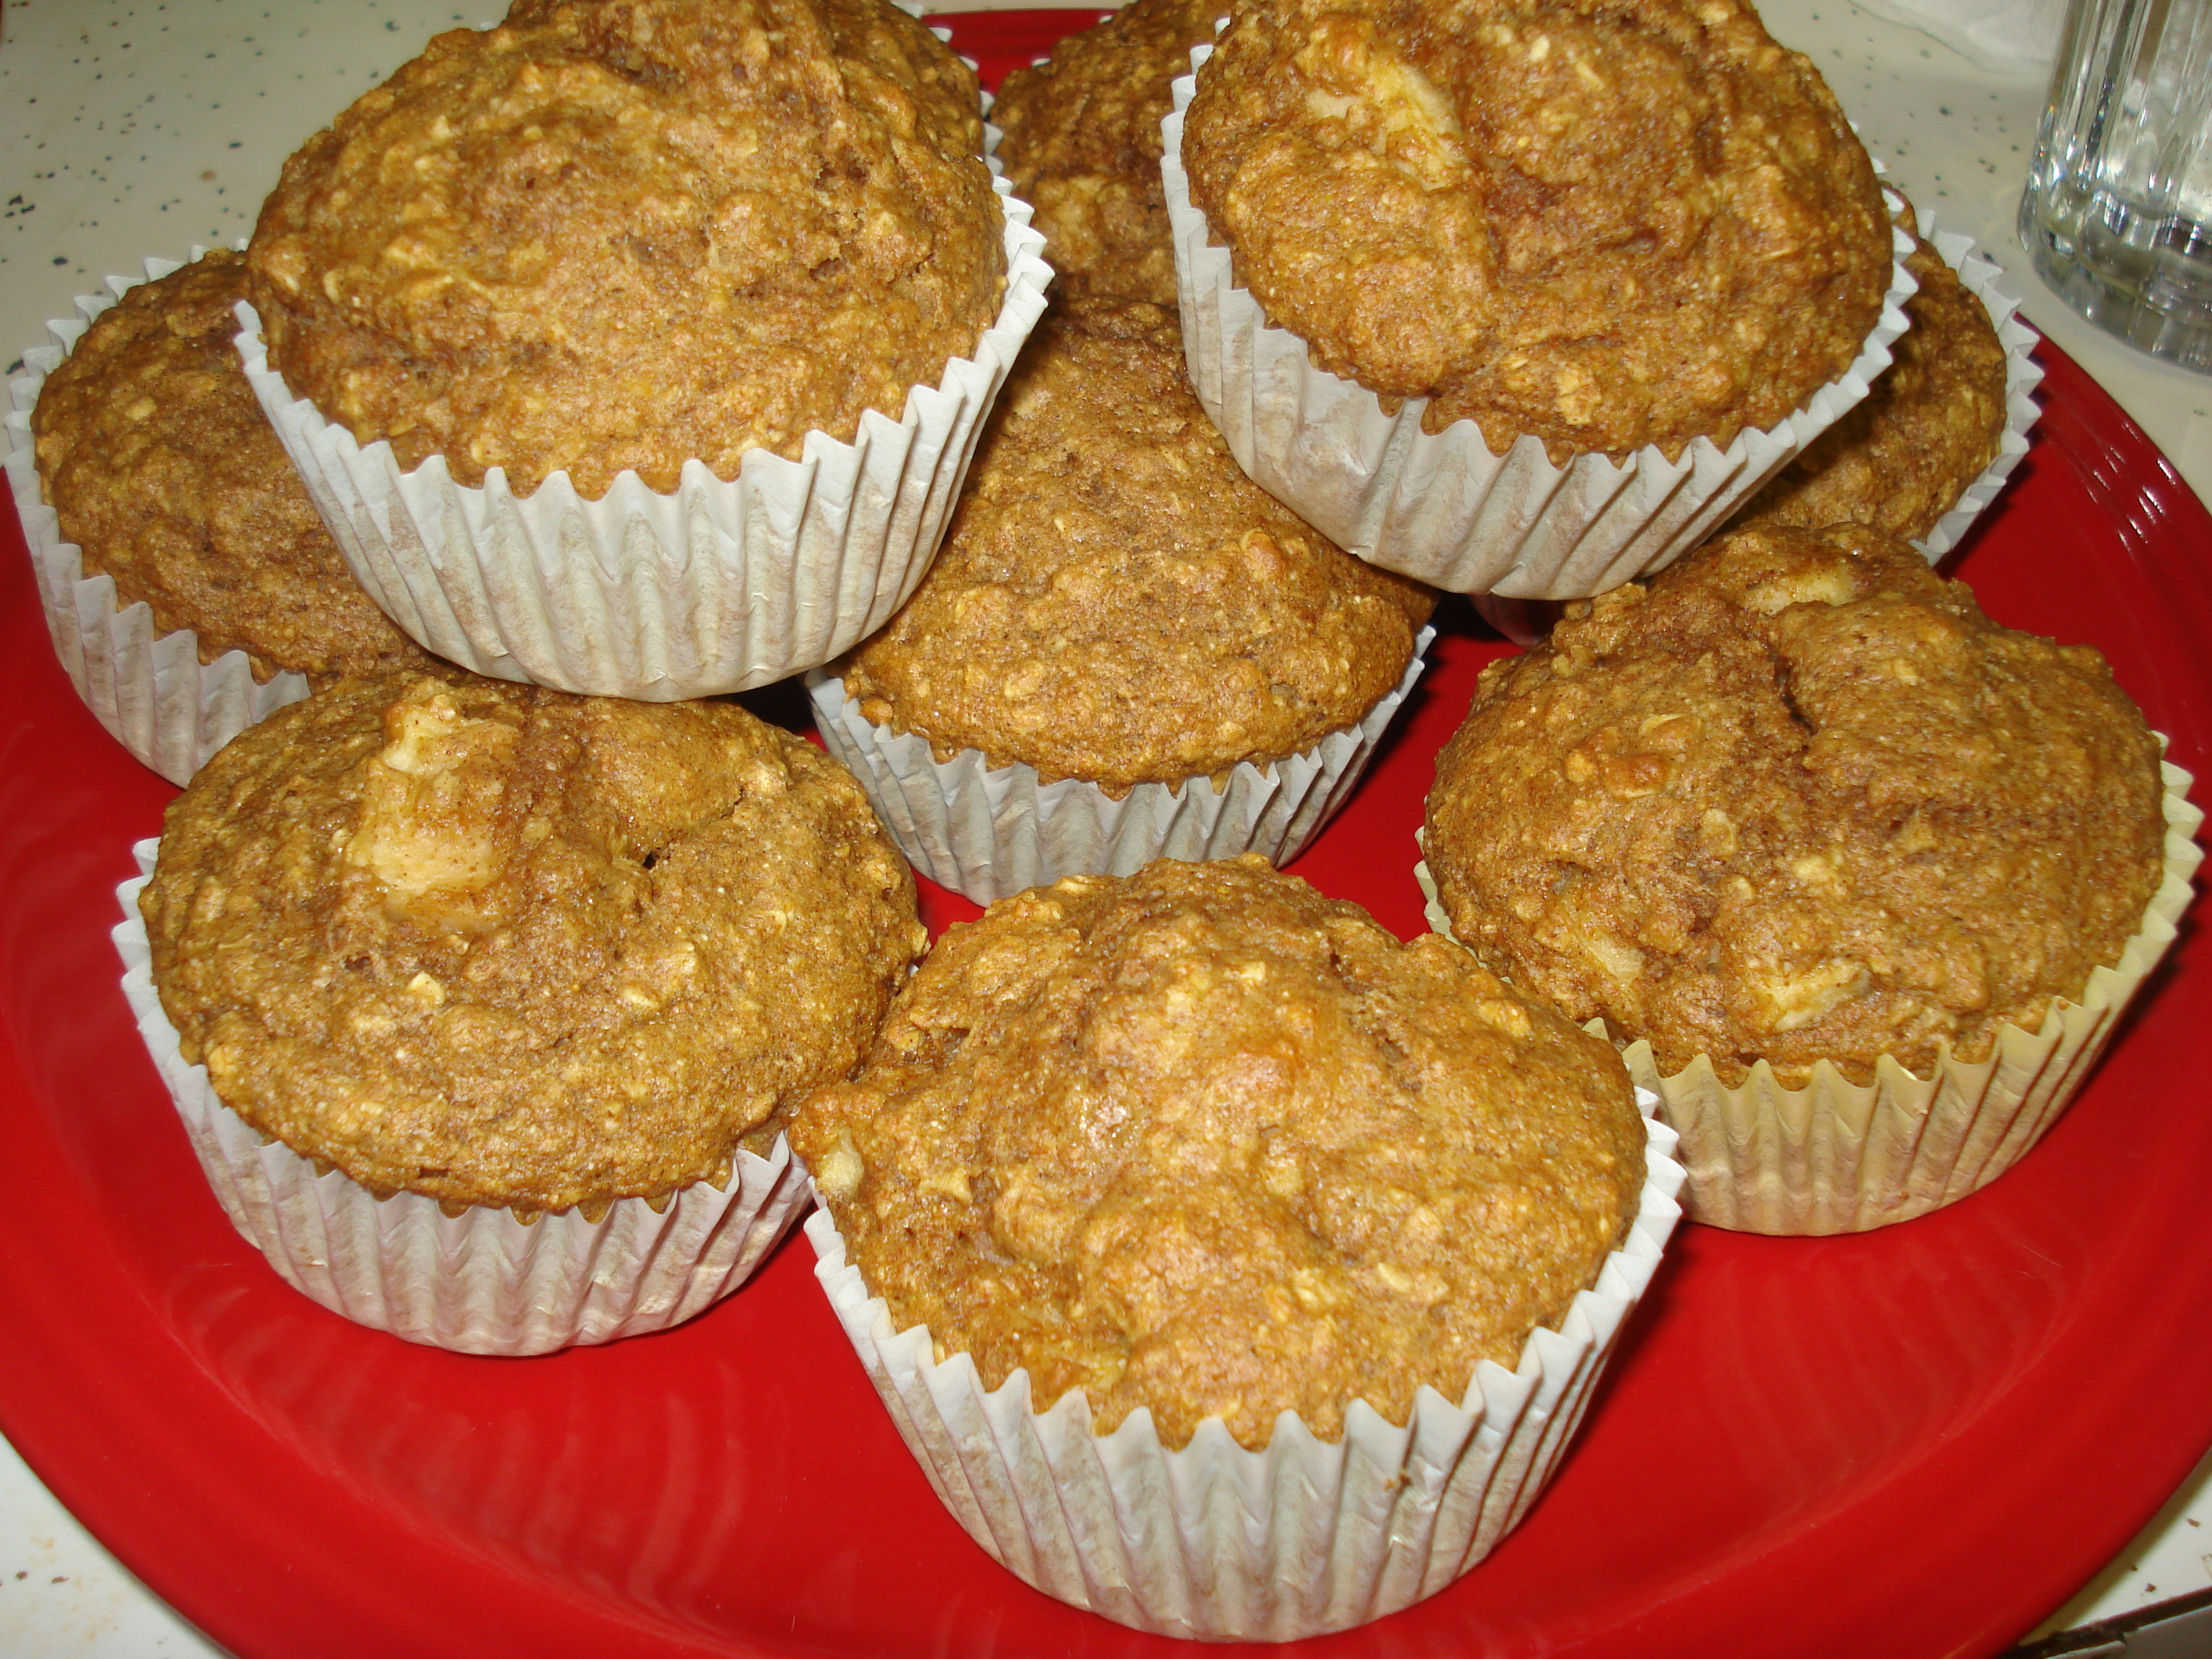 ... oatmeal muffins december 19 is oatmeal muffin apple oatmeal muffins